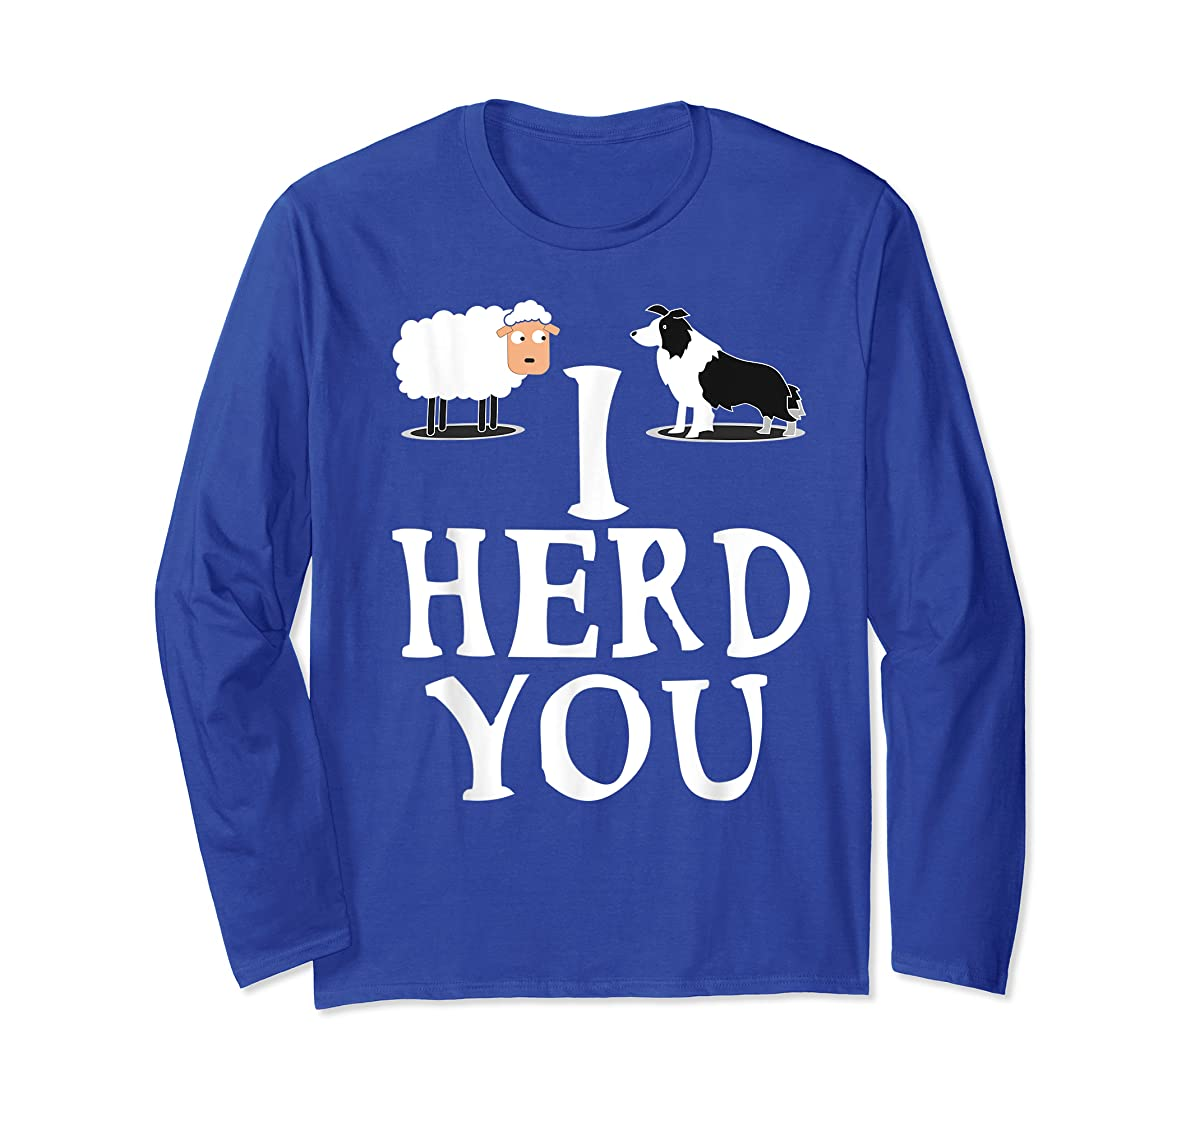 I HERD YOU BORDER COLLIE T shirt Gifts for Men Women Kids-Long Sleeve-Royal